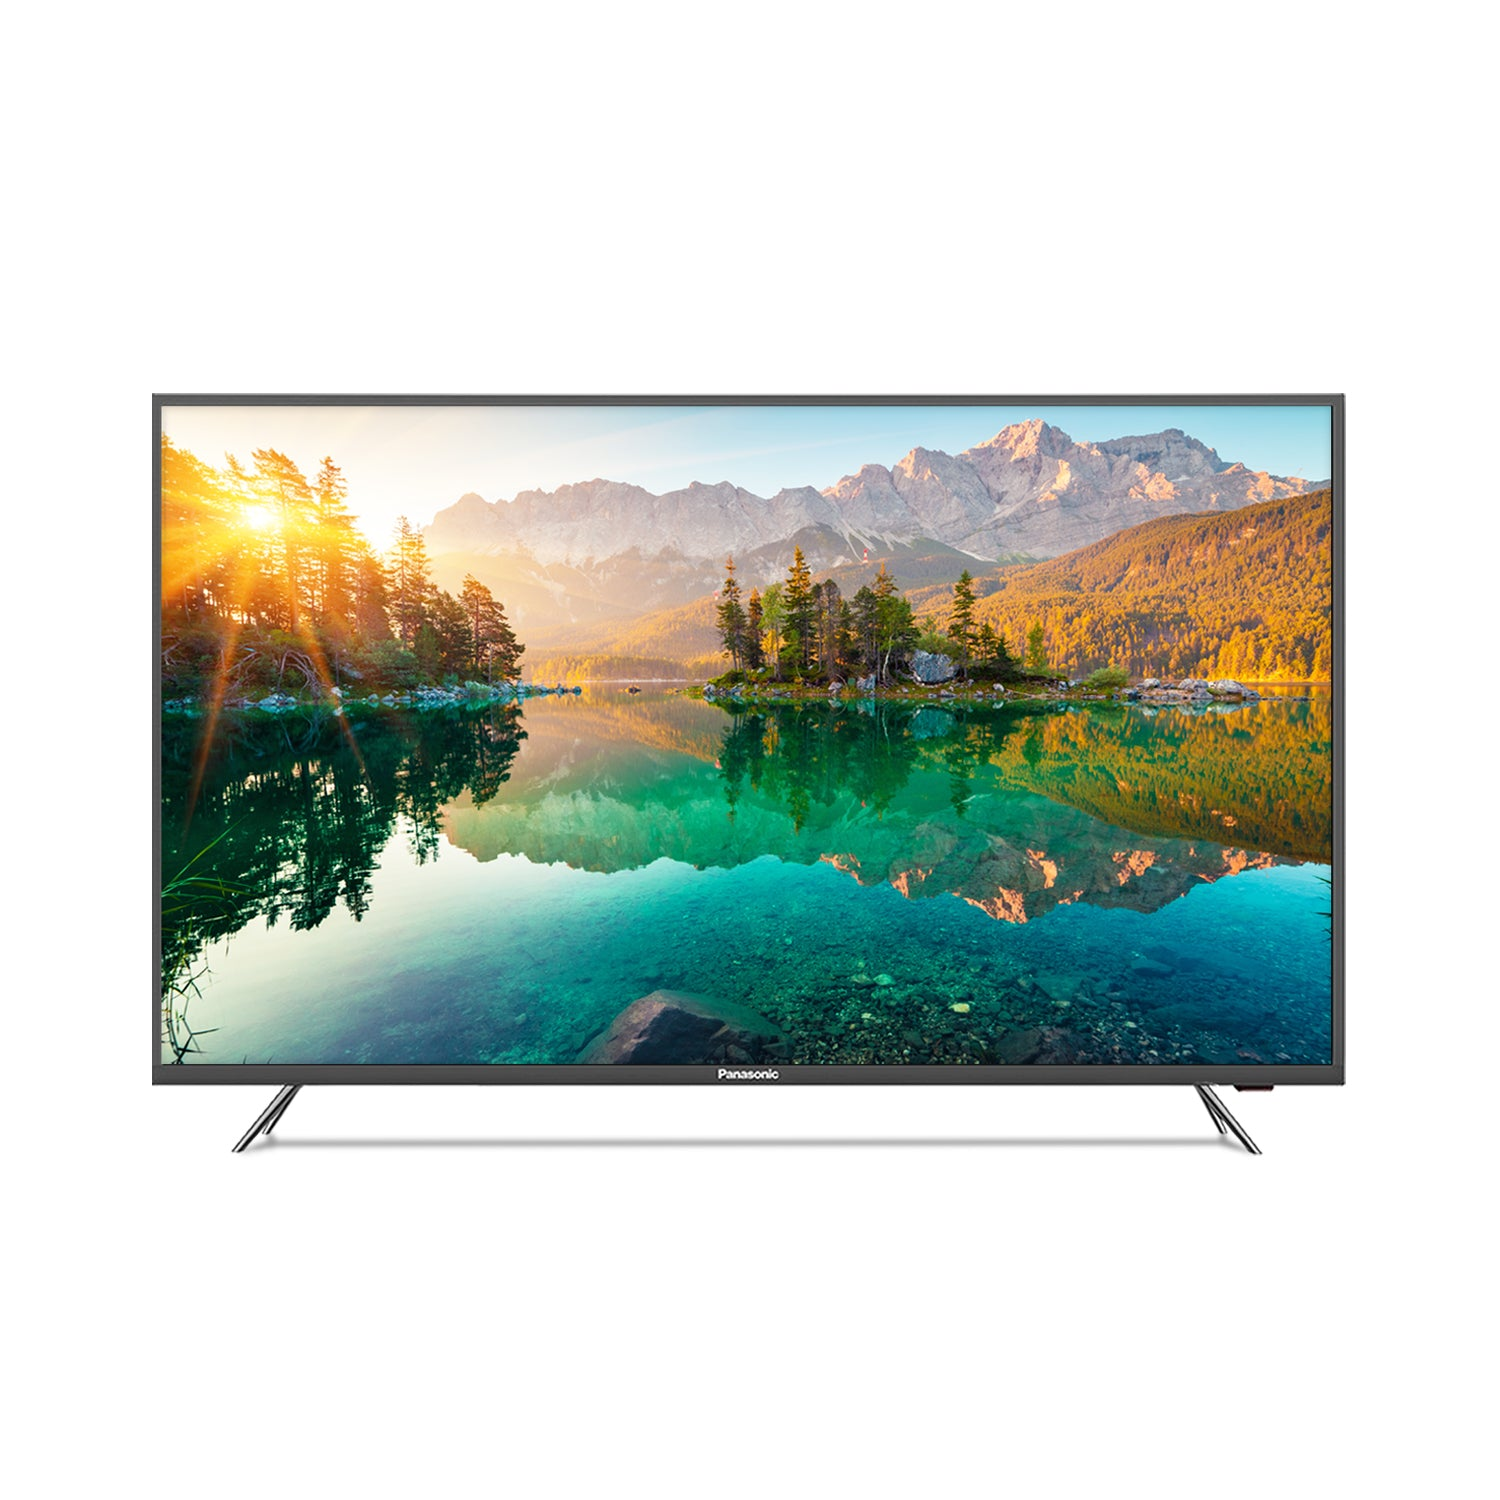 65-inch LED 4K UHD Smart TV